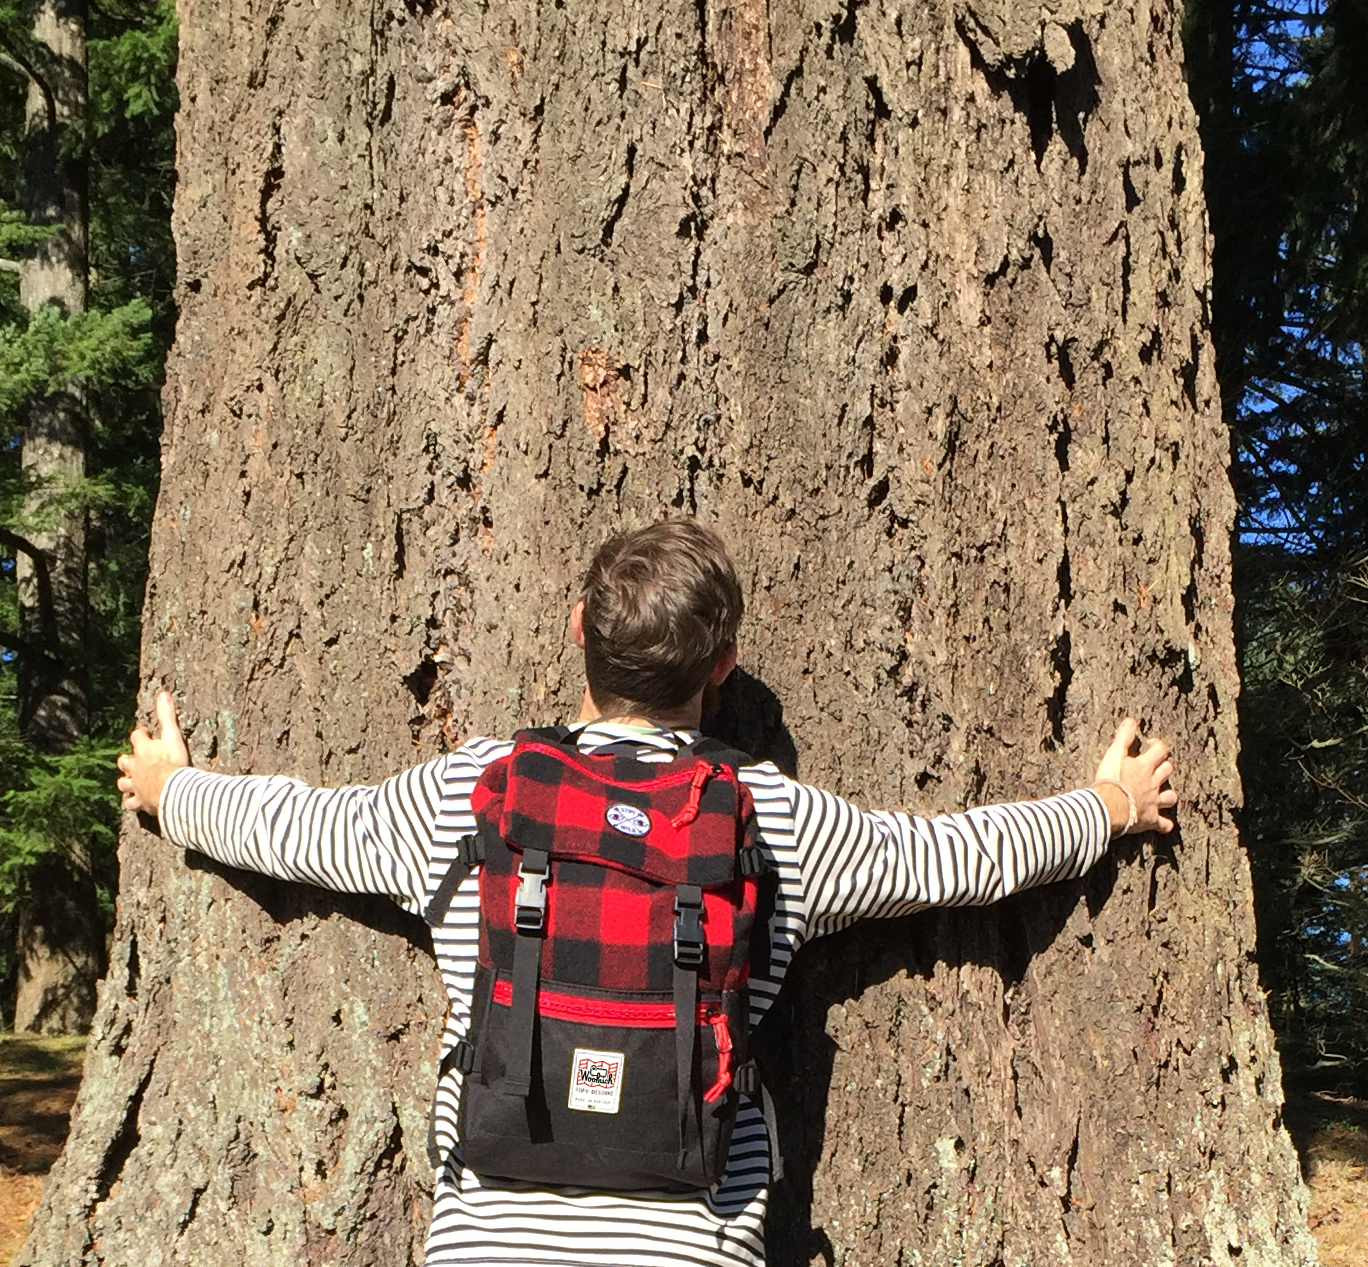 For the tree hugger!  Woolrich & Topo Designs  collaborative backpack. Made in the USA. Combining heritage lumberjacking with modern urban outdoorsyness!